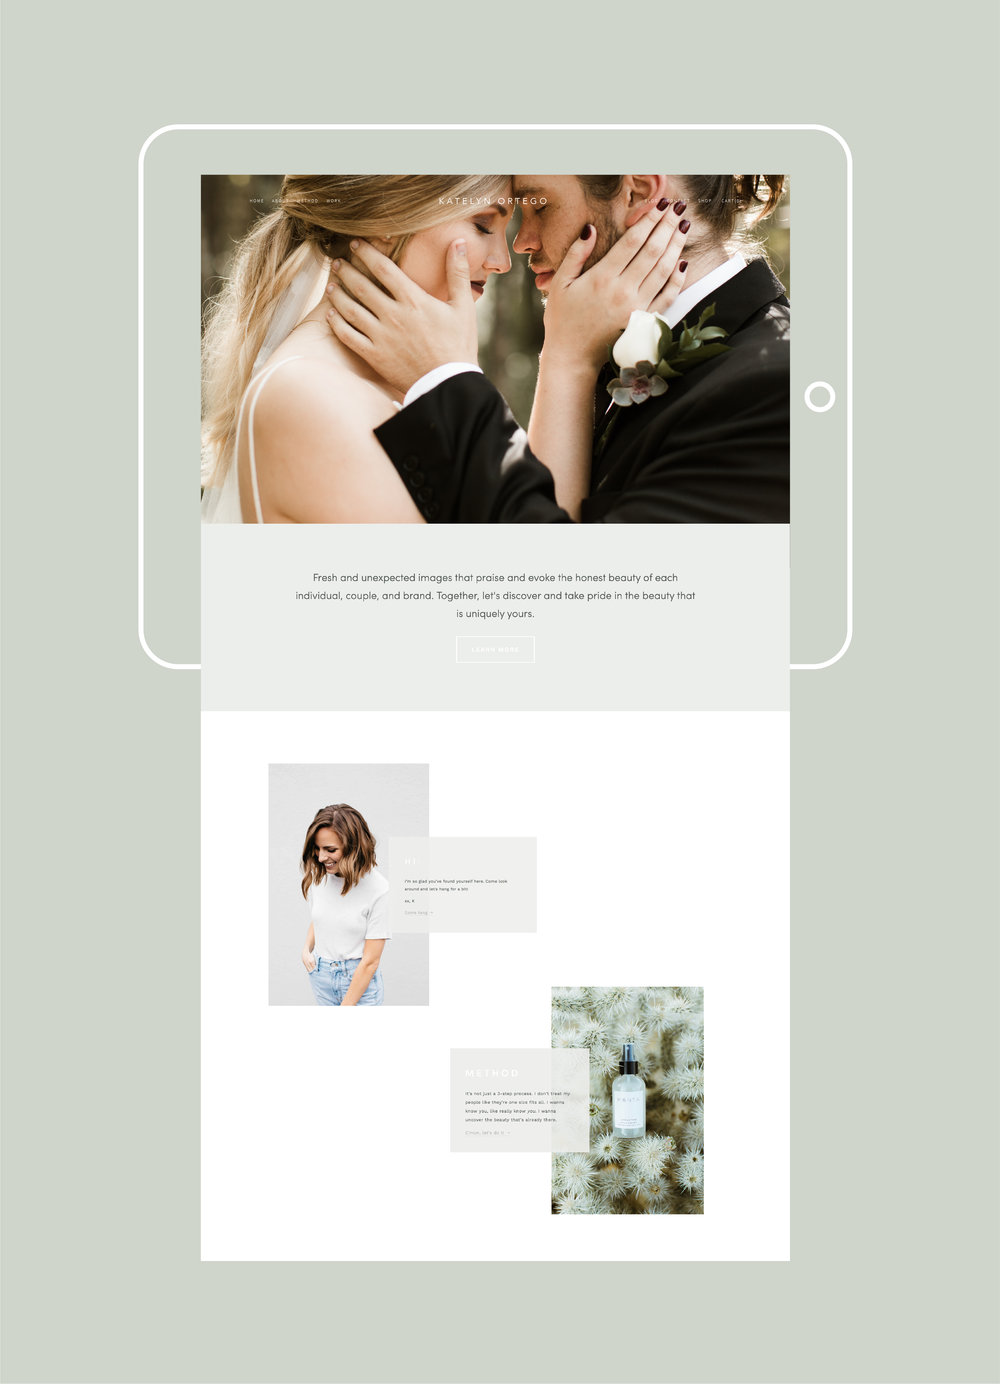 CANOPY_Katelyn Ortego_Website Design-05.jpg